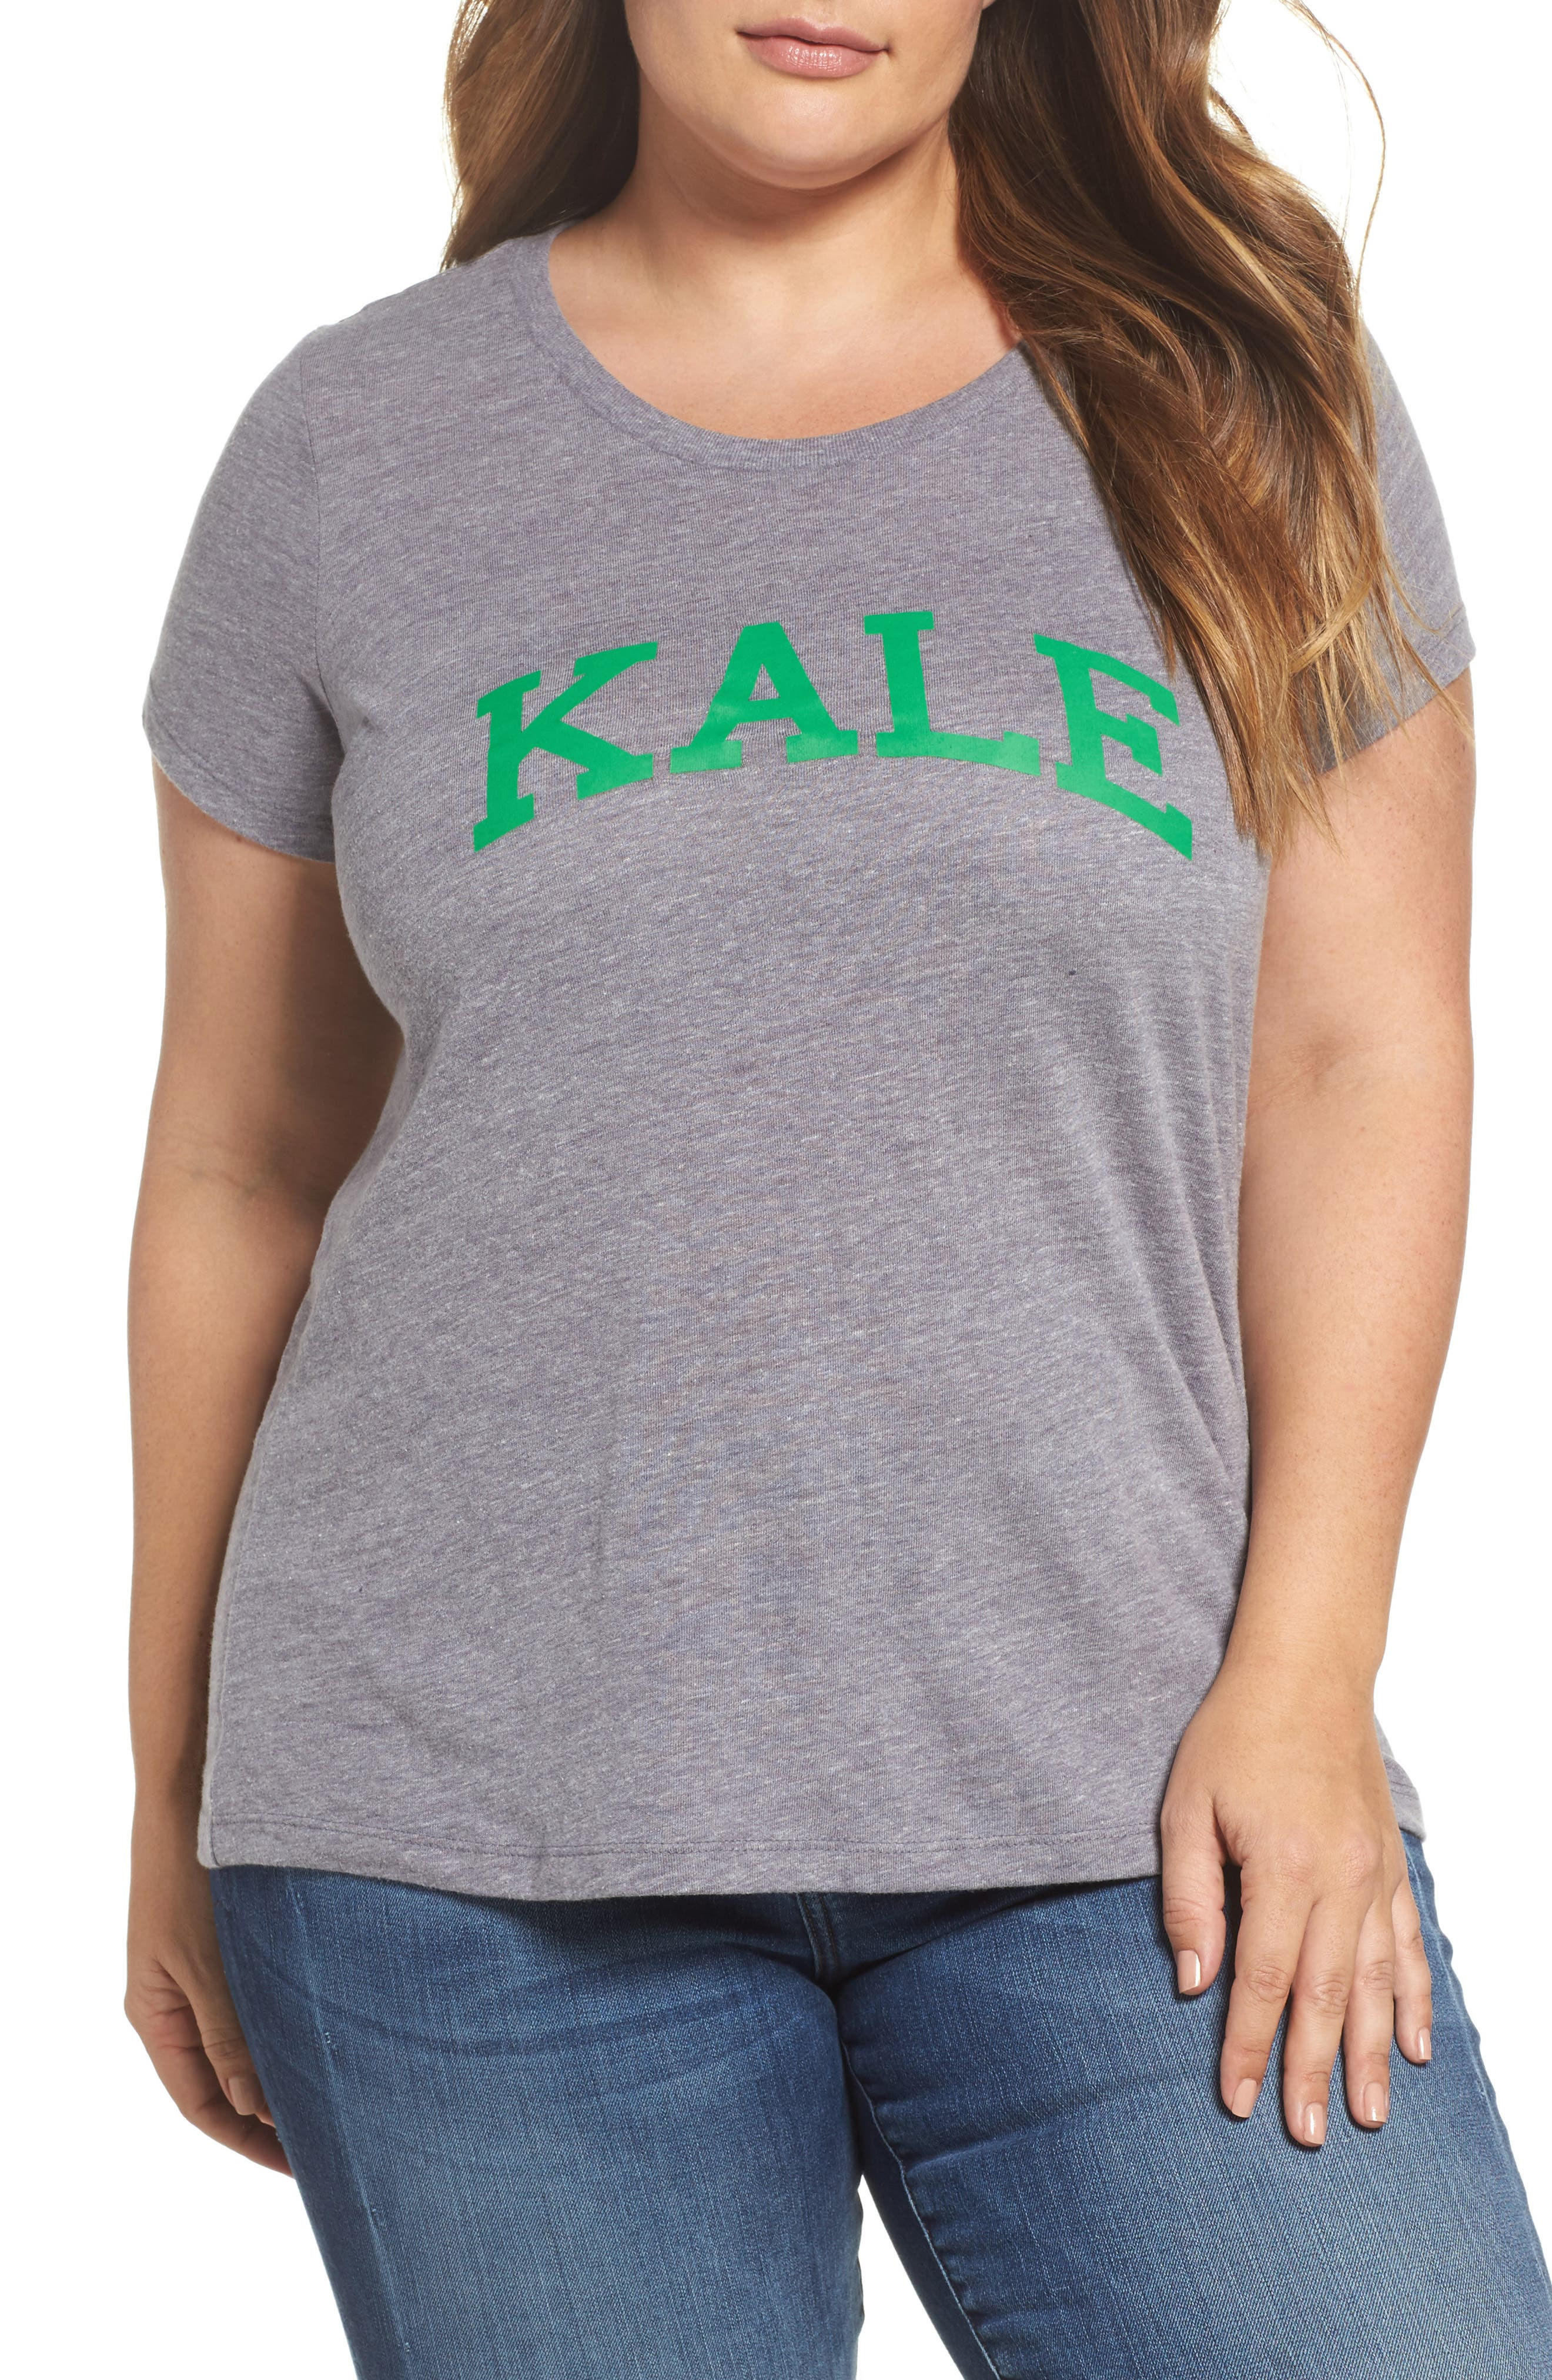 Kale Graphic Tee,                         Main,                         color, Heather Grey